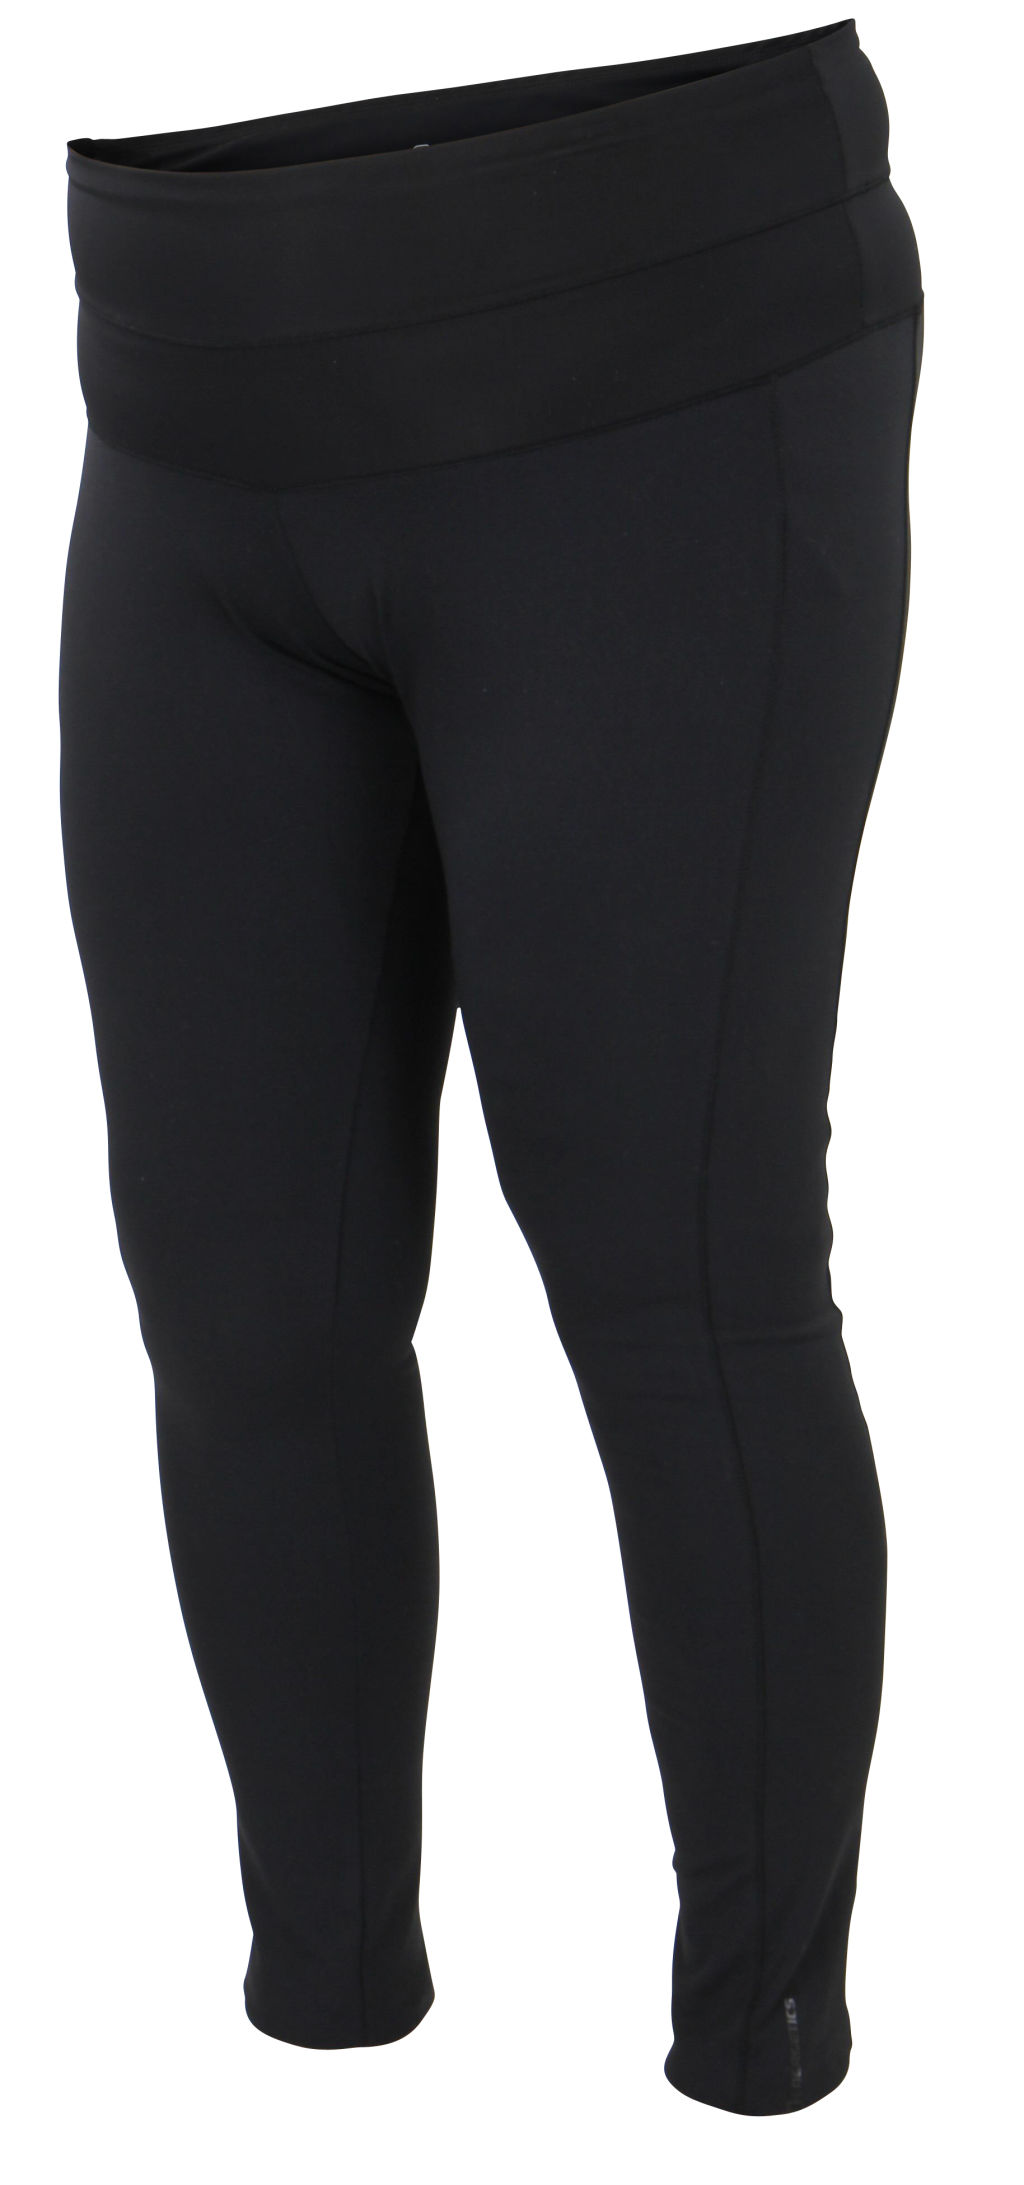 Energetics Kima Tight ++ W